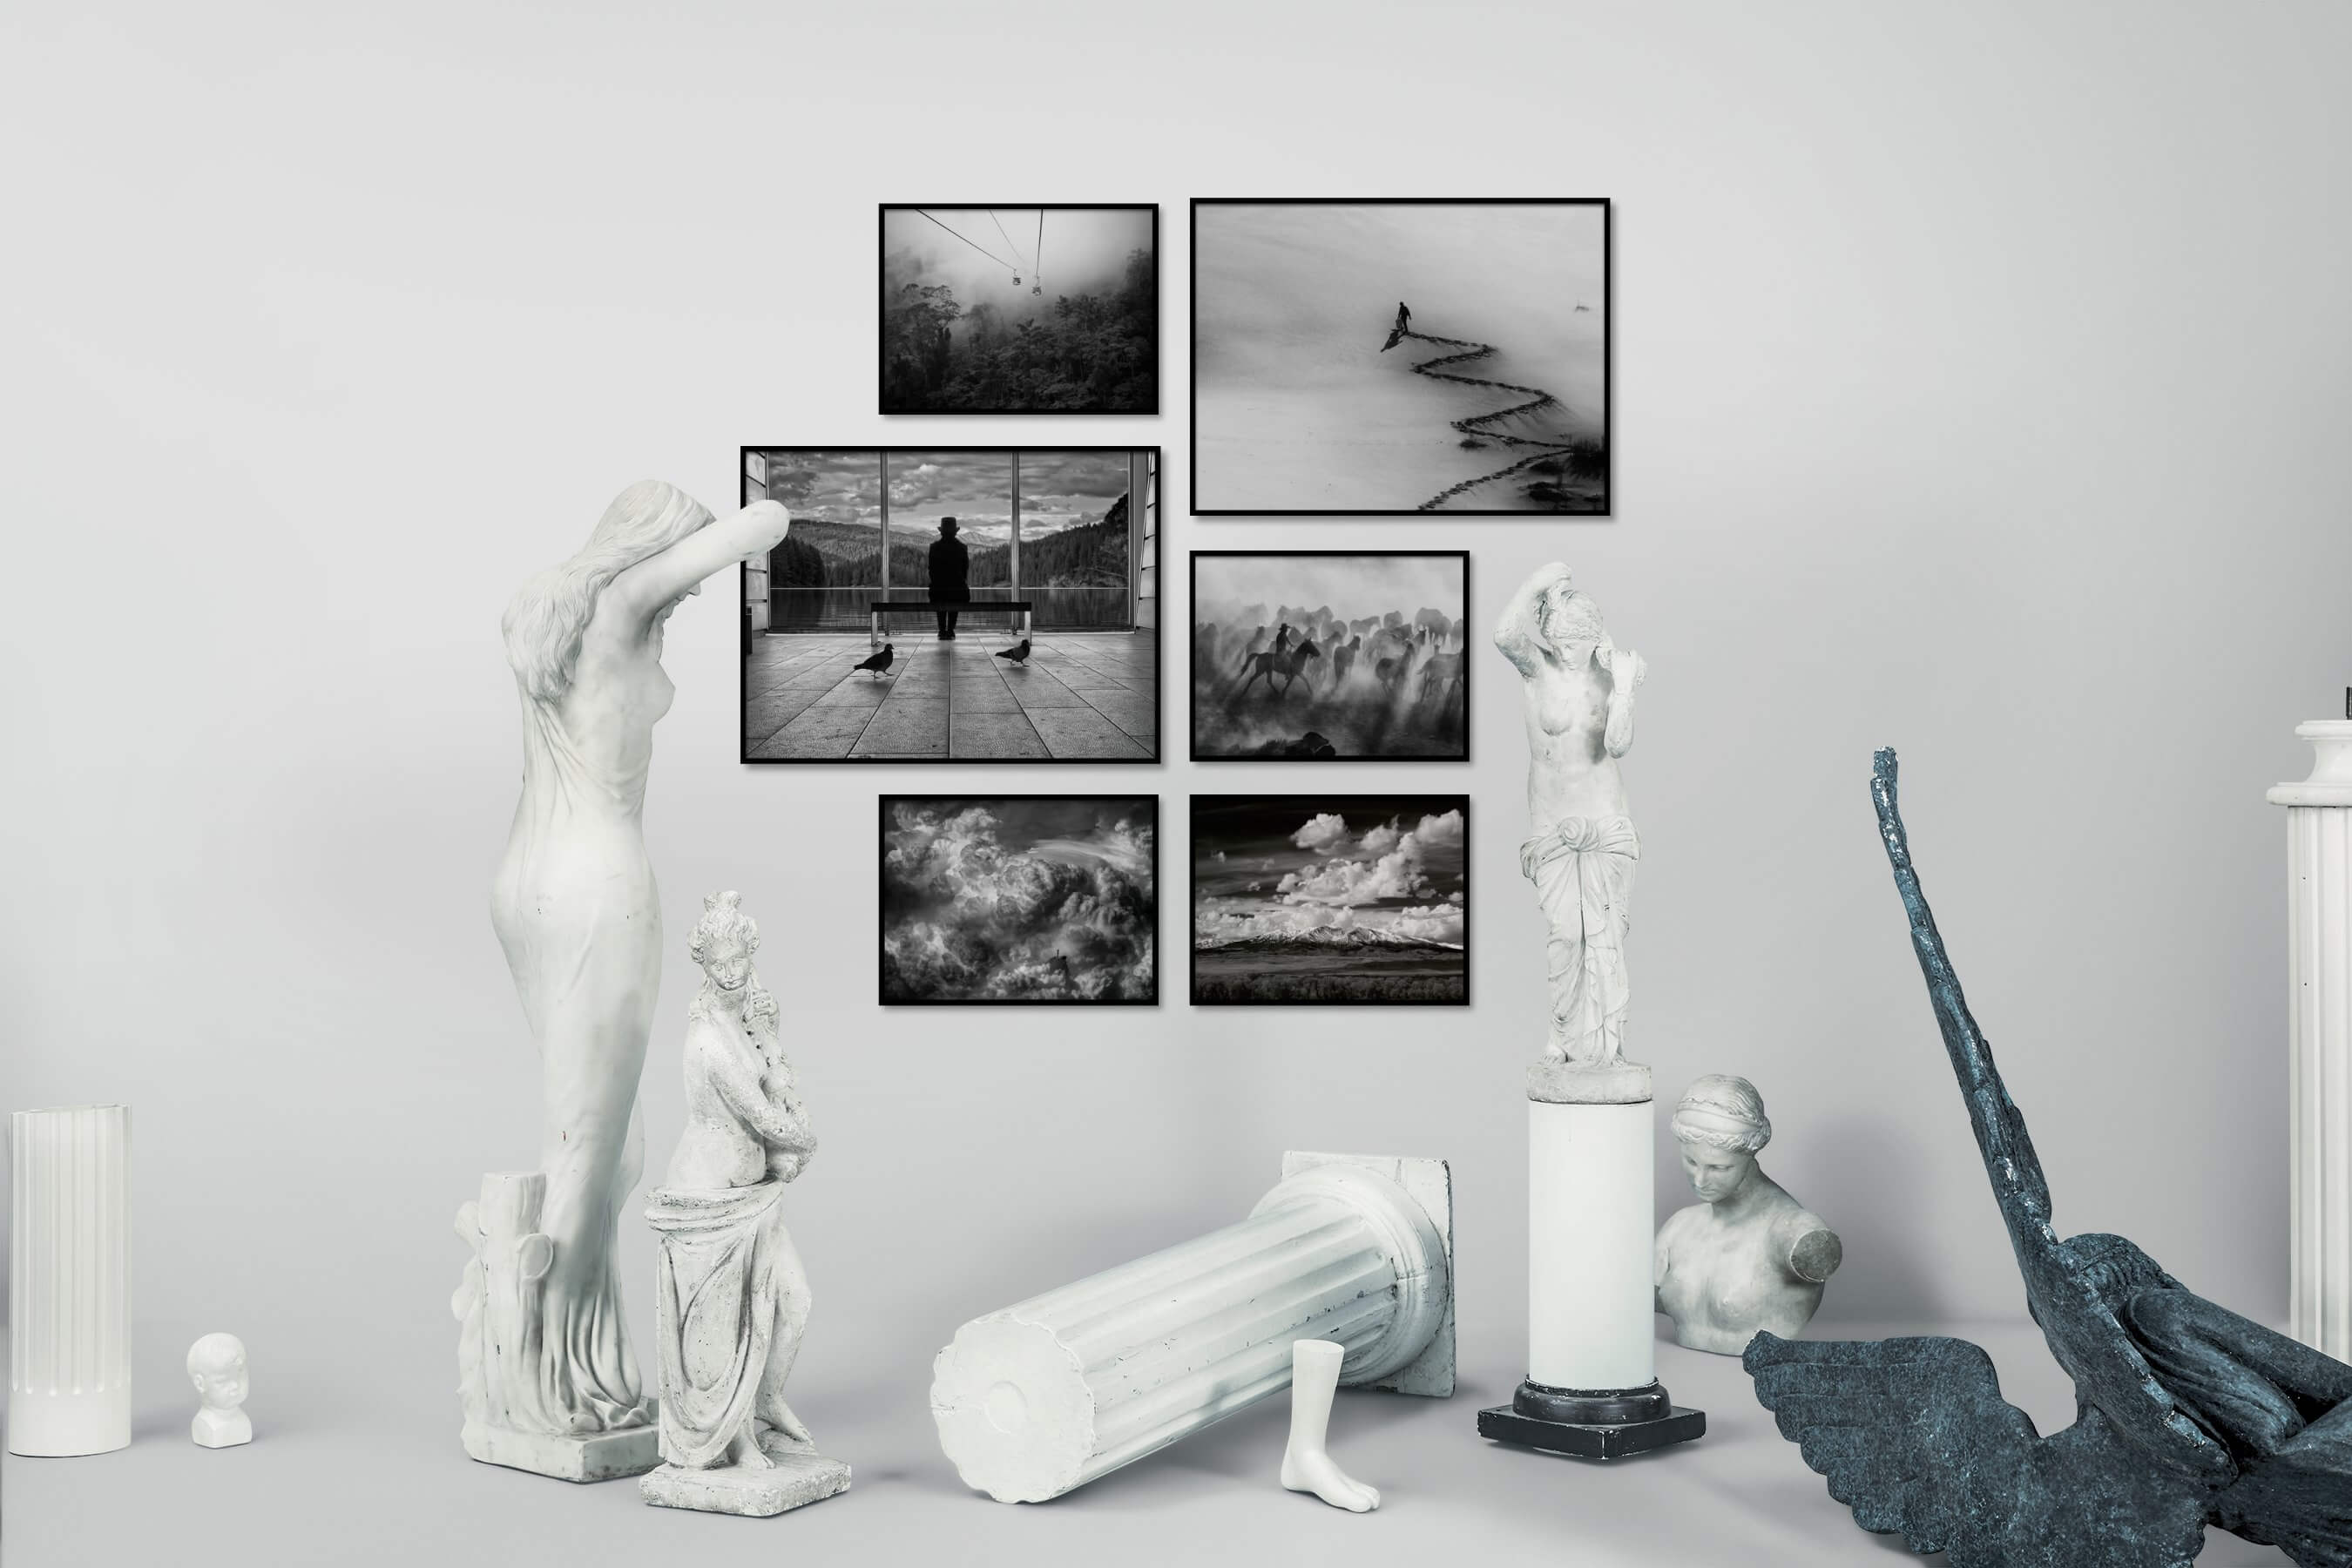 Gallery wall idea with six framed pictures arranged on a wall depicting Black & White, Nature, For the Minimalist, Artsy, Mindfulness, Animals, Country Life, and For the Maximalist